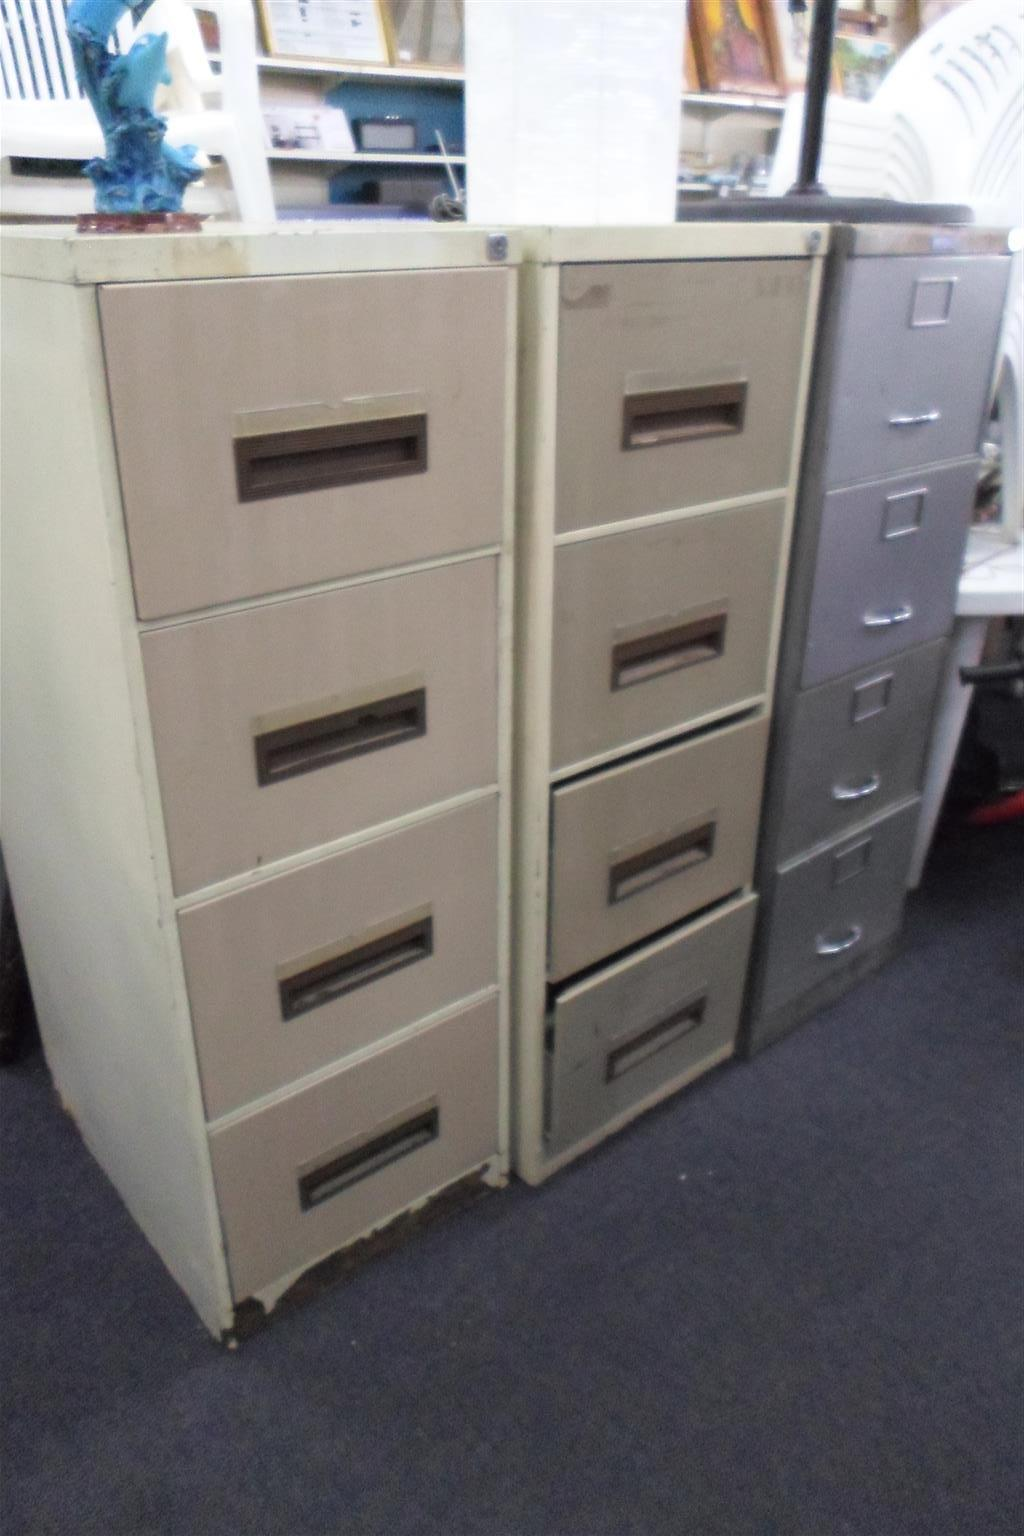 4 Drawer Steel Filing Cabinets - B033046417-1-3